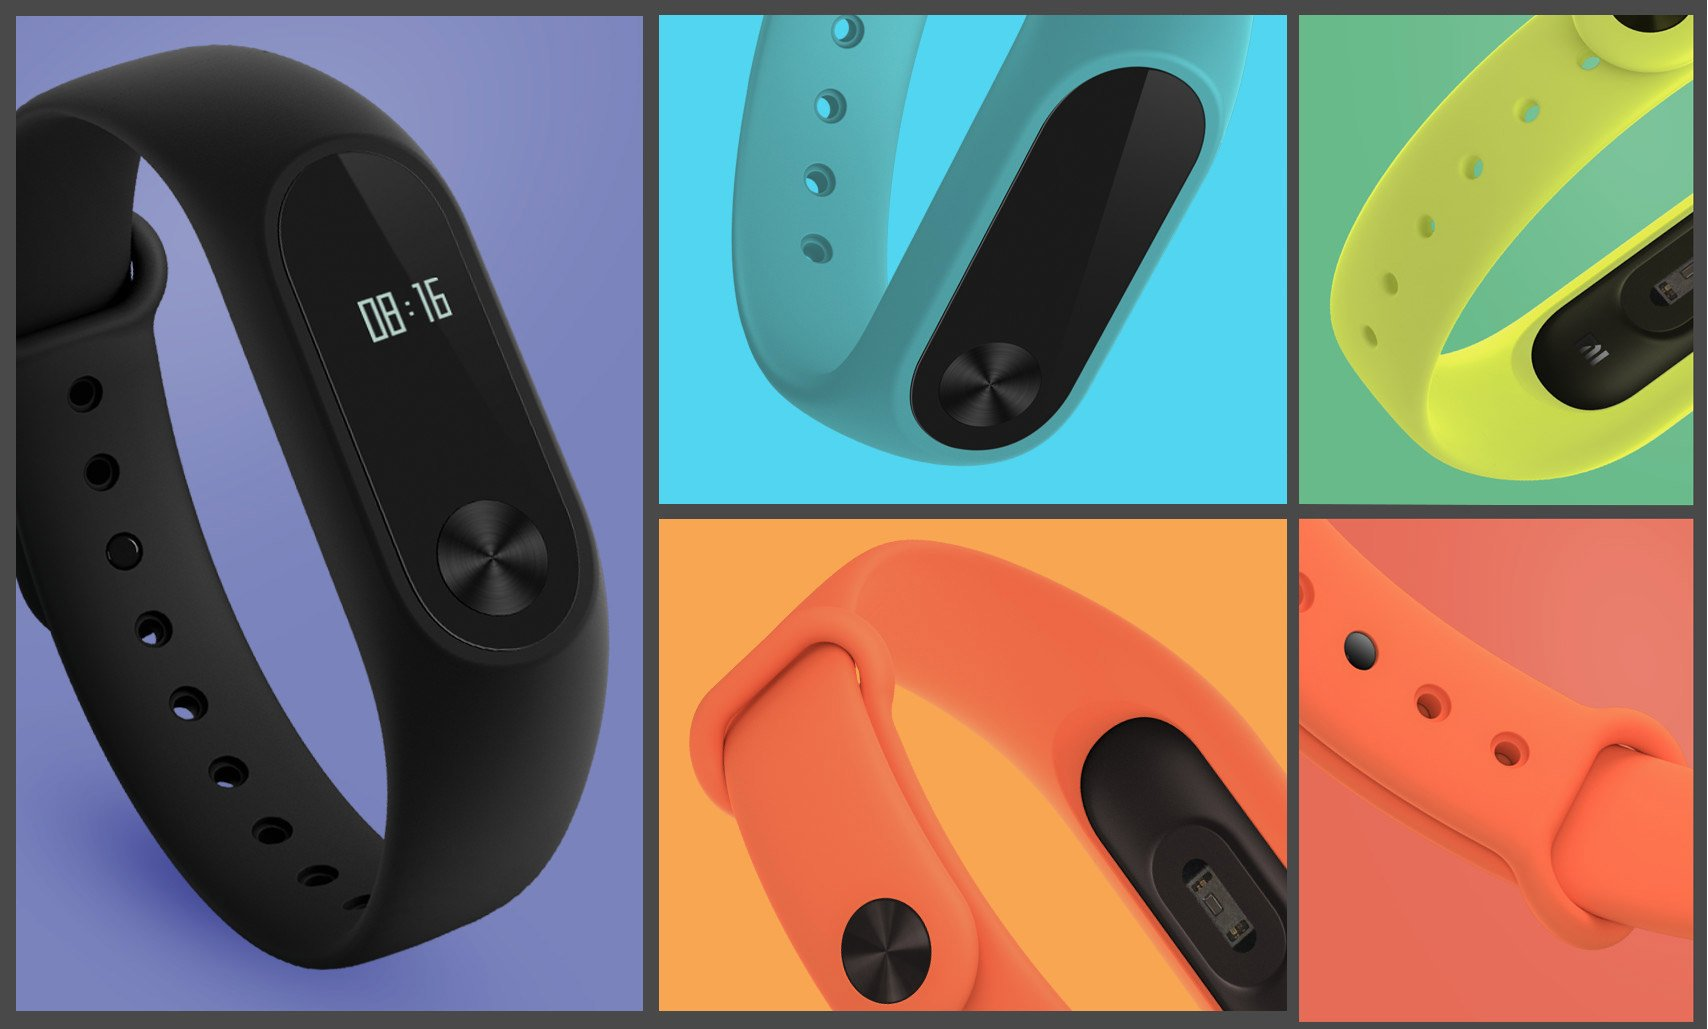 le xiaomi mi band 2 est l avec un cran oled et un. Black Bedroom Furniture Sets. Home Design Ideas